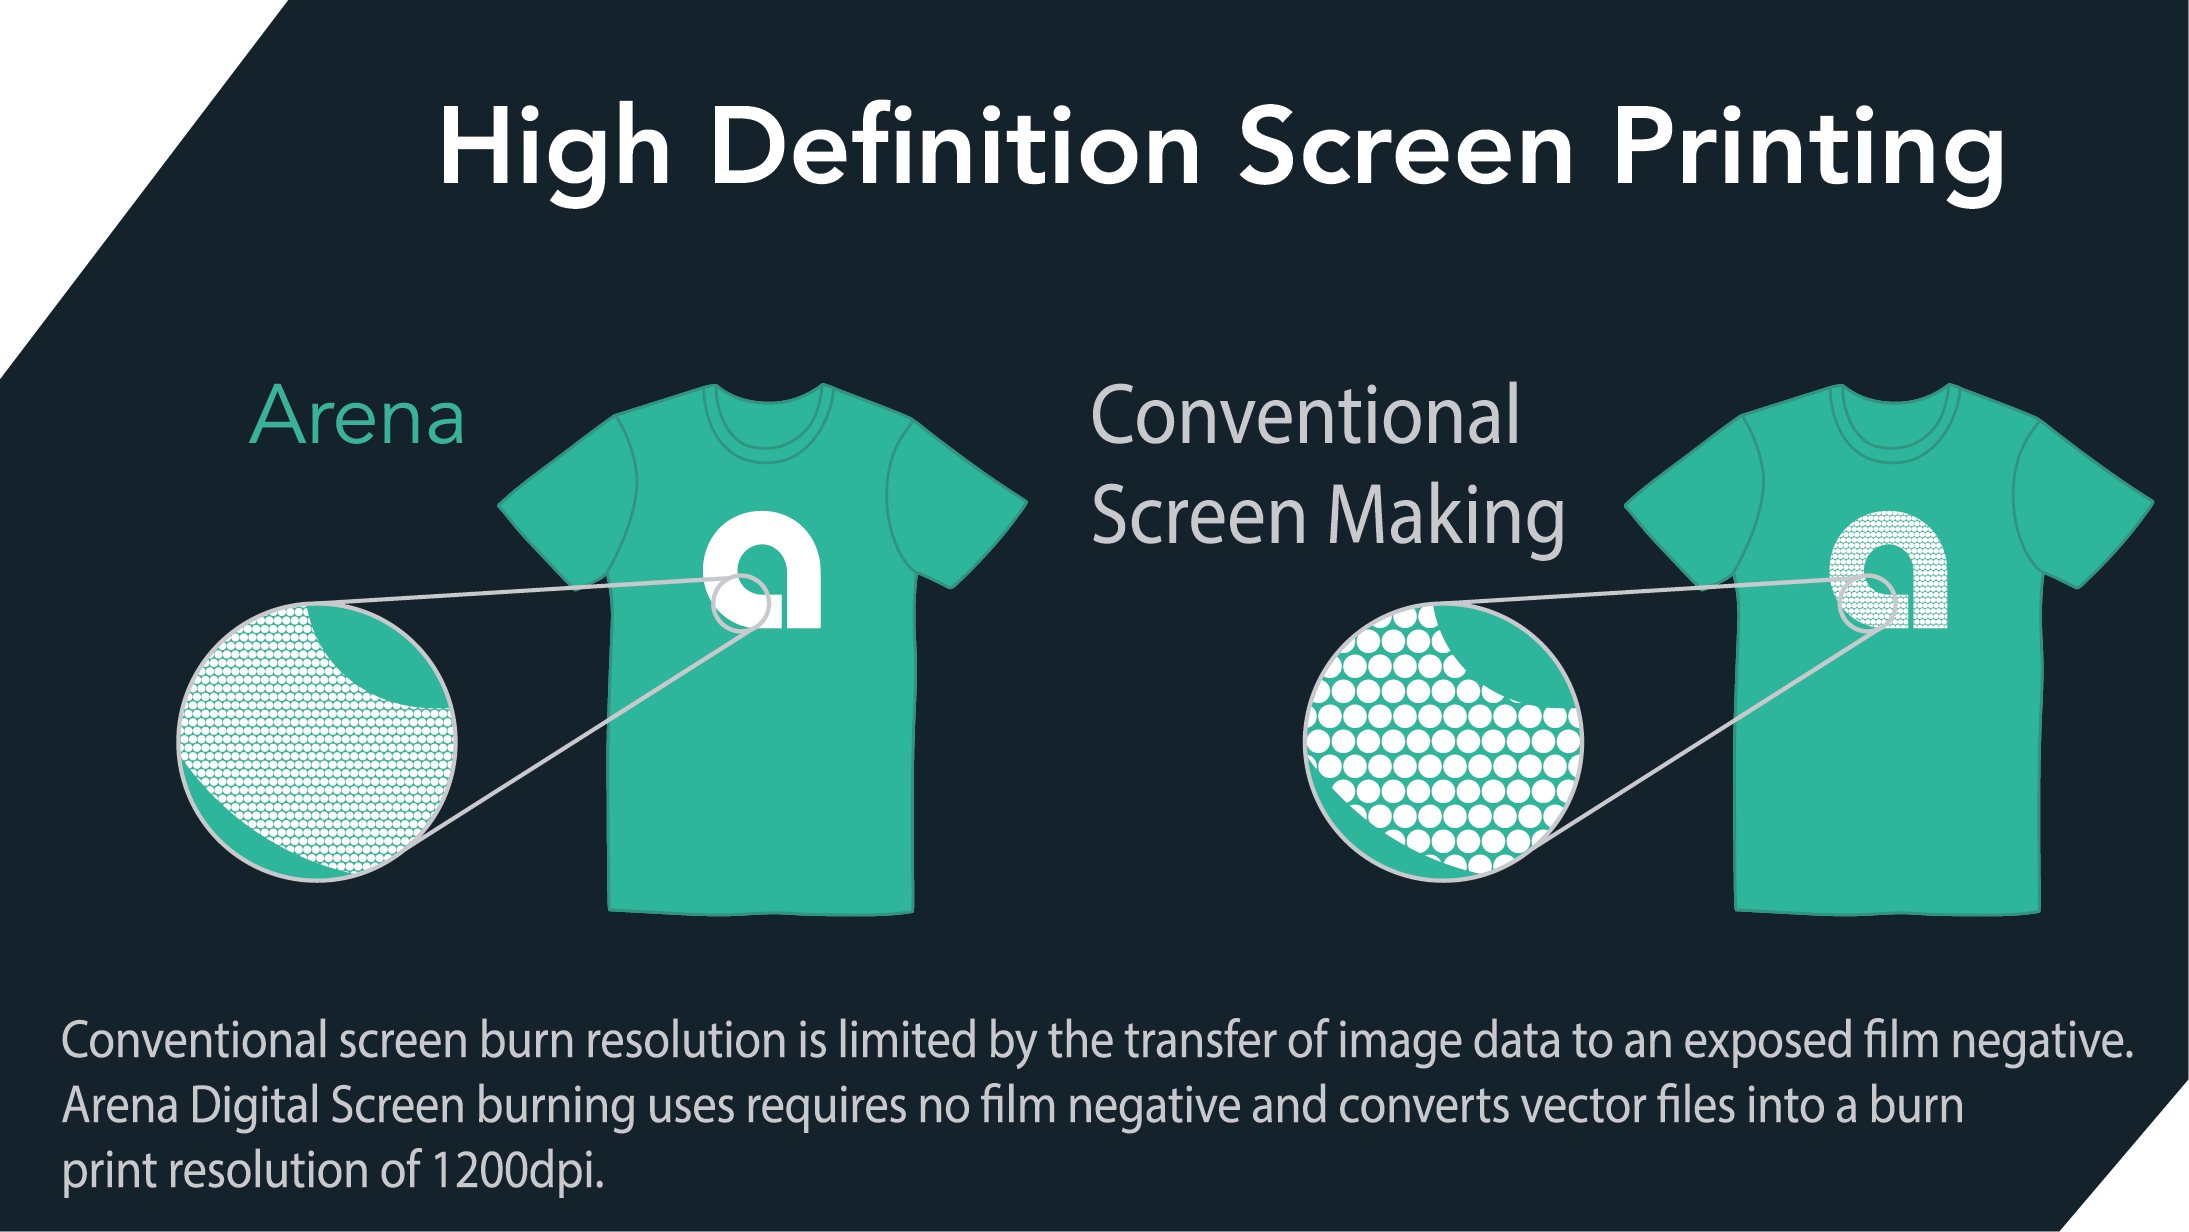 Arena Prints Screen Burning Services and Pre-Burned Screens